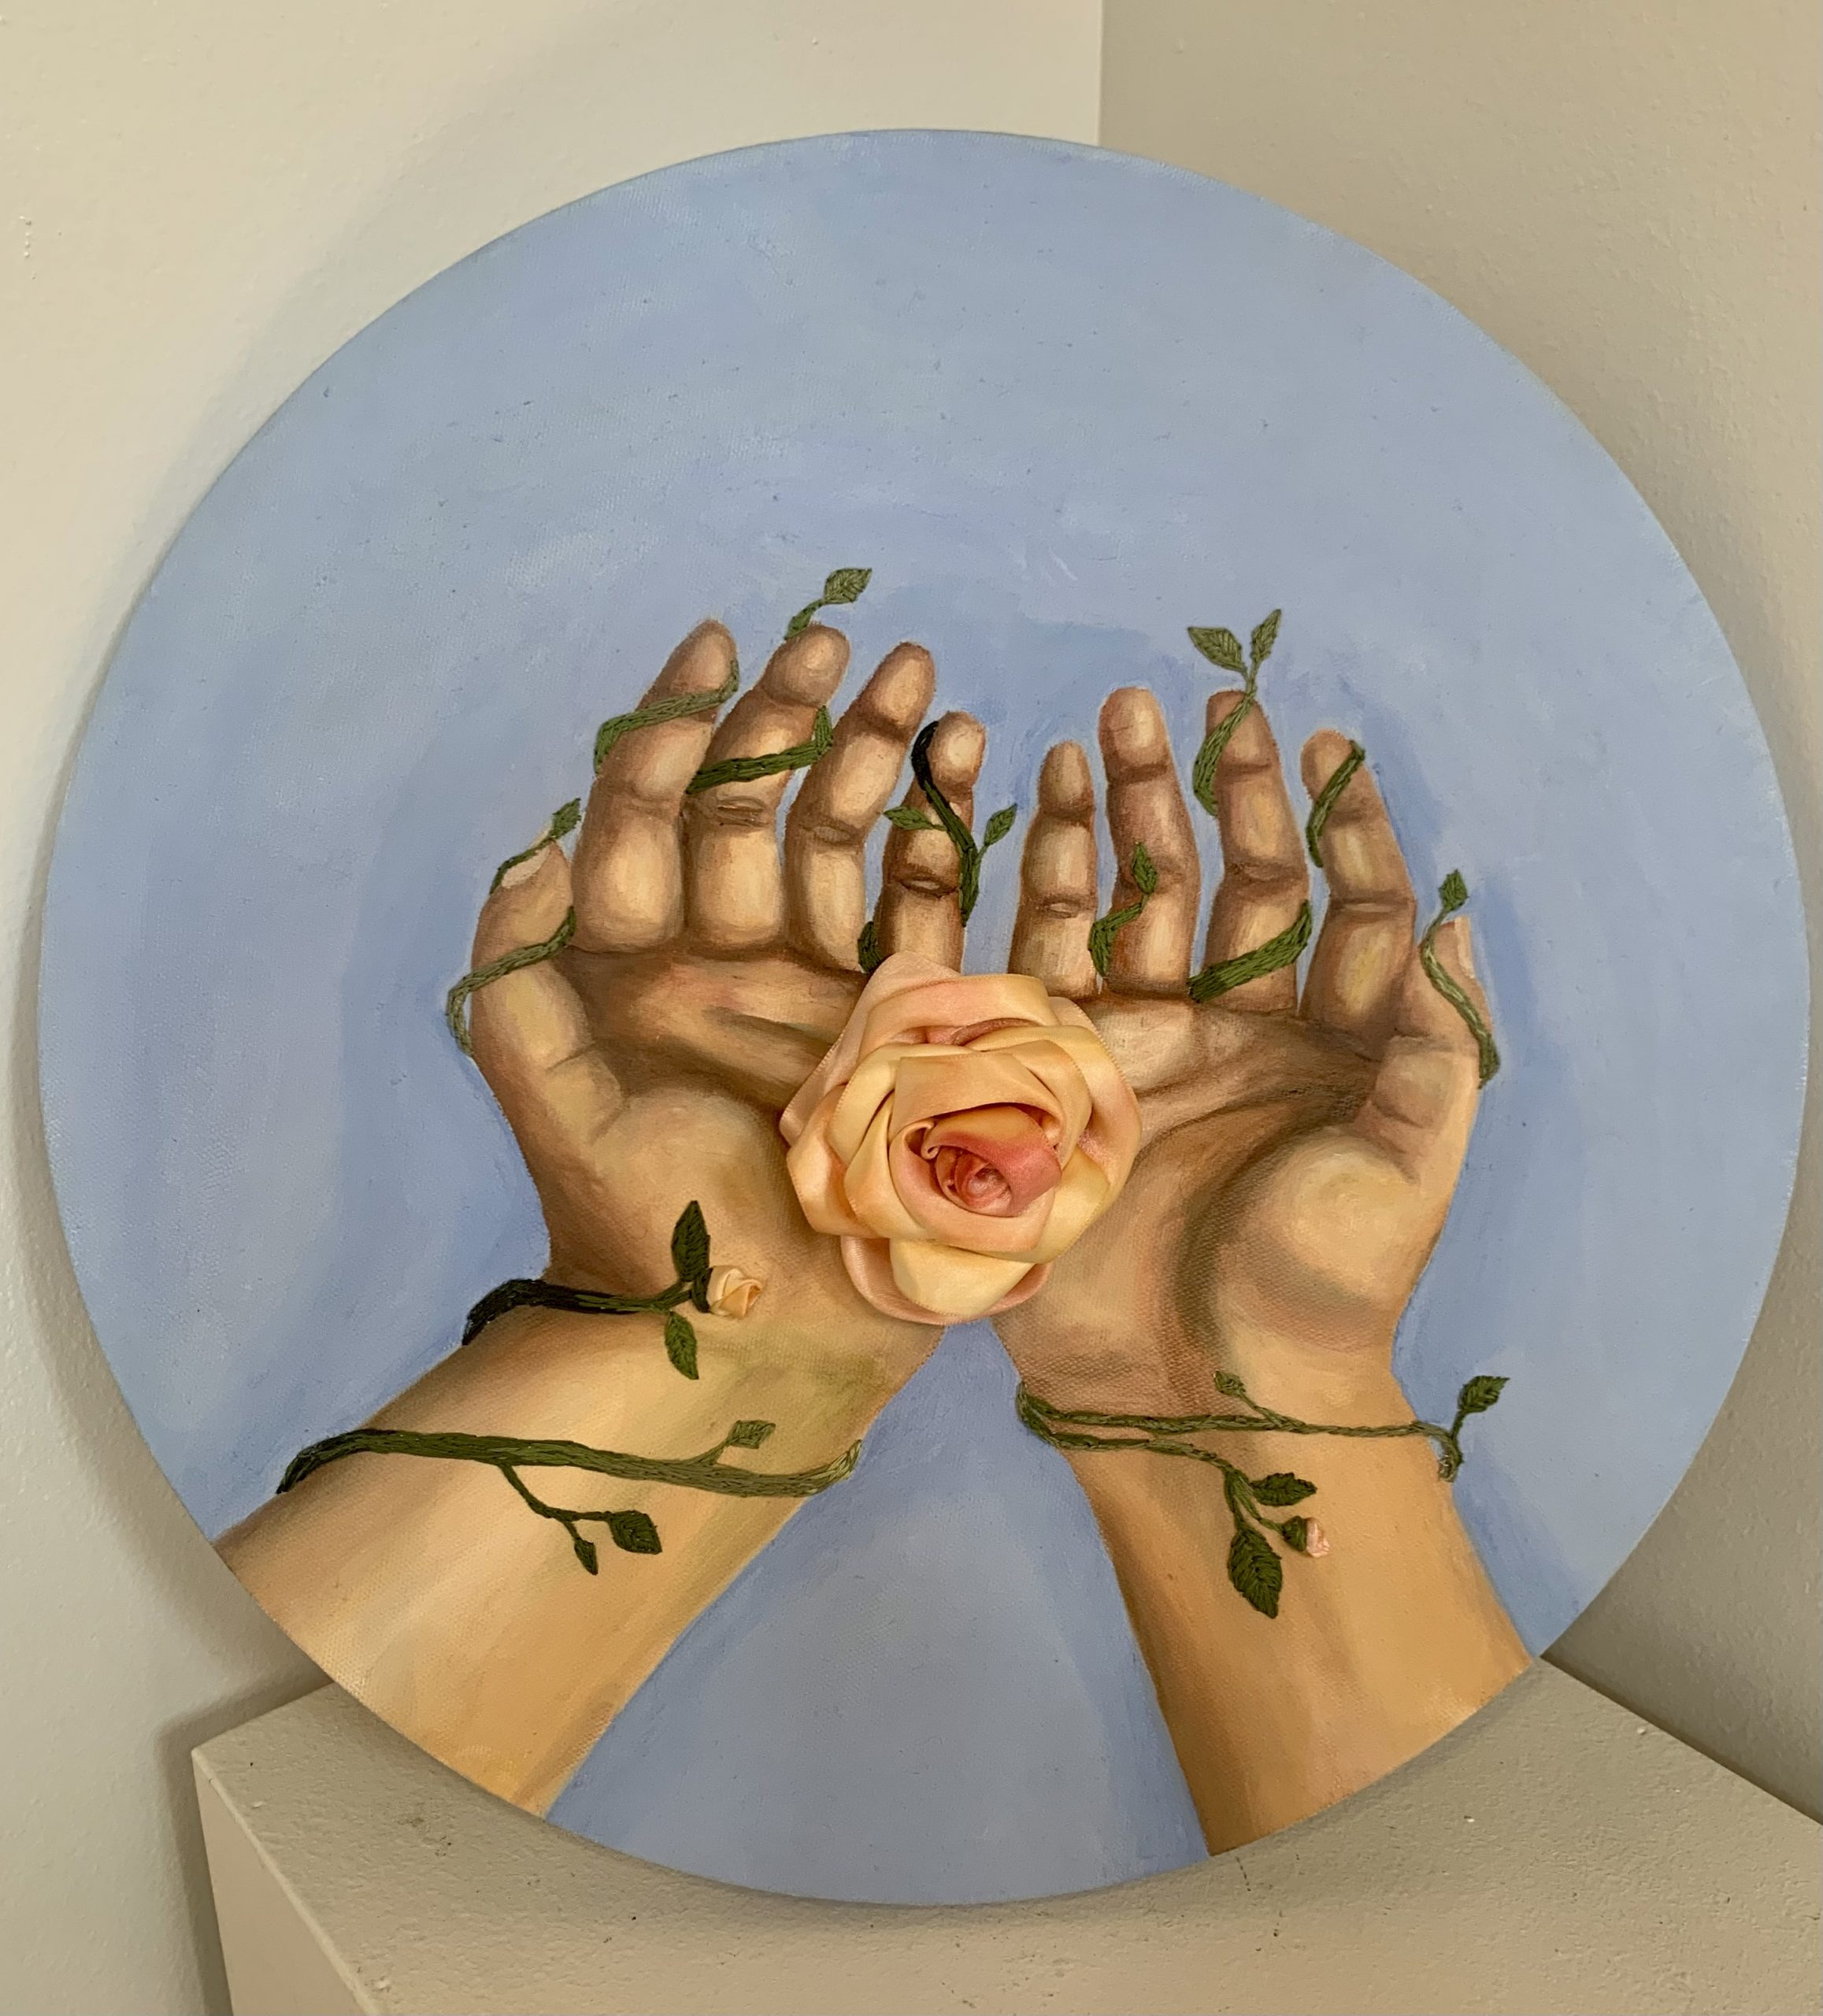 Artist #4 - The Giving Hands